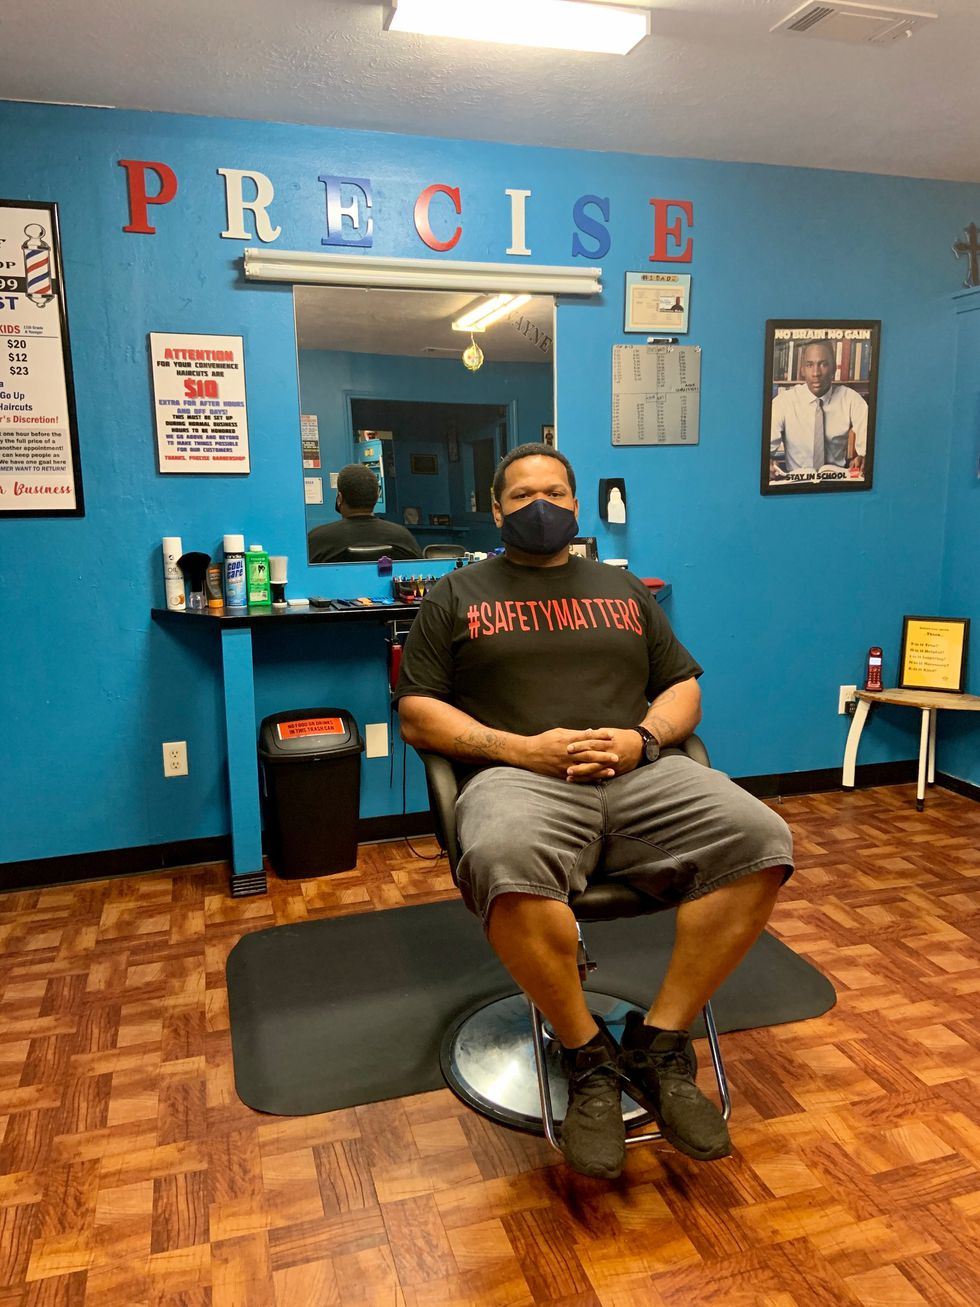 Dwayne Dupar is the owner of Precise Barbershop in Pineville. He says his wife has underlying health conditions that makes him especially concerned about COVID-19.